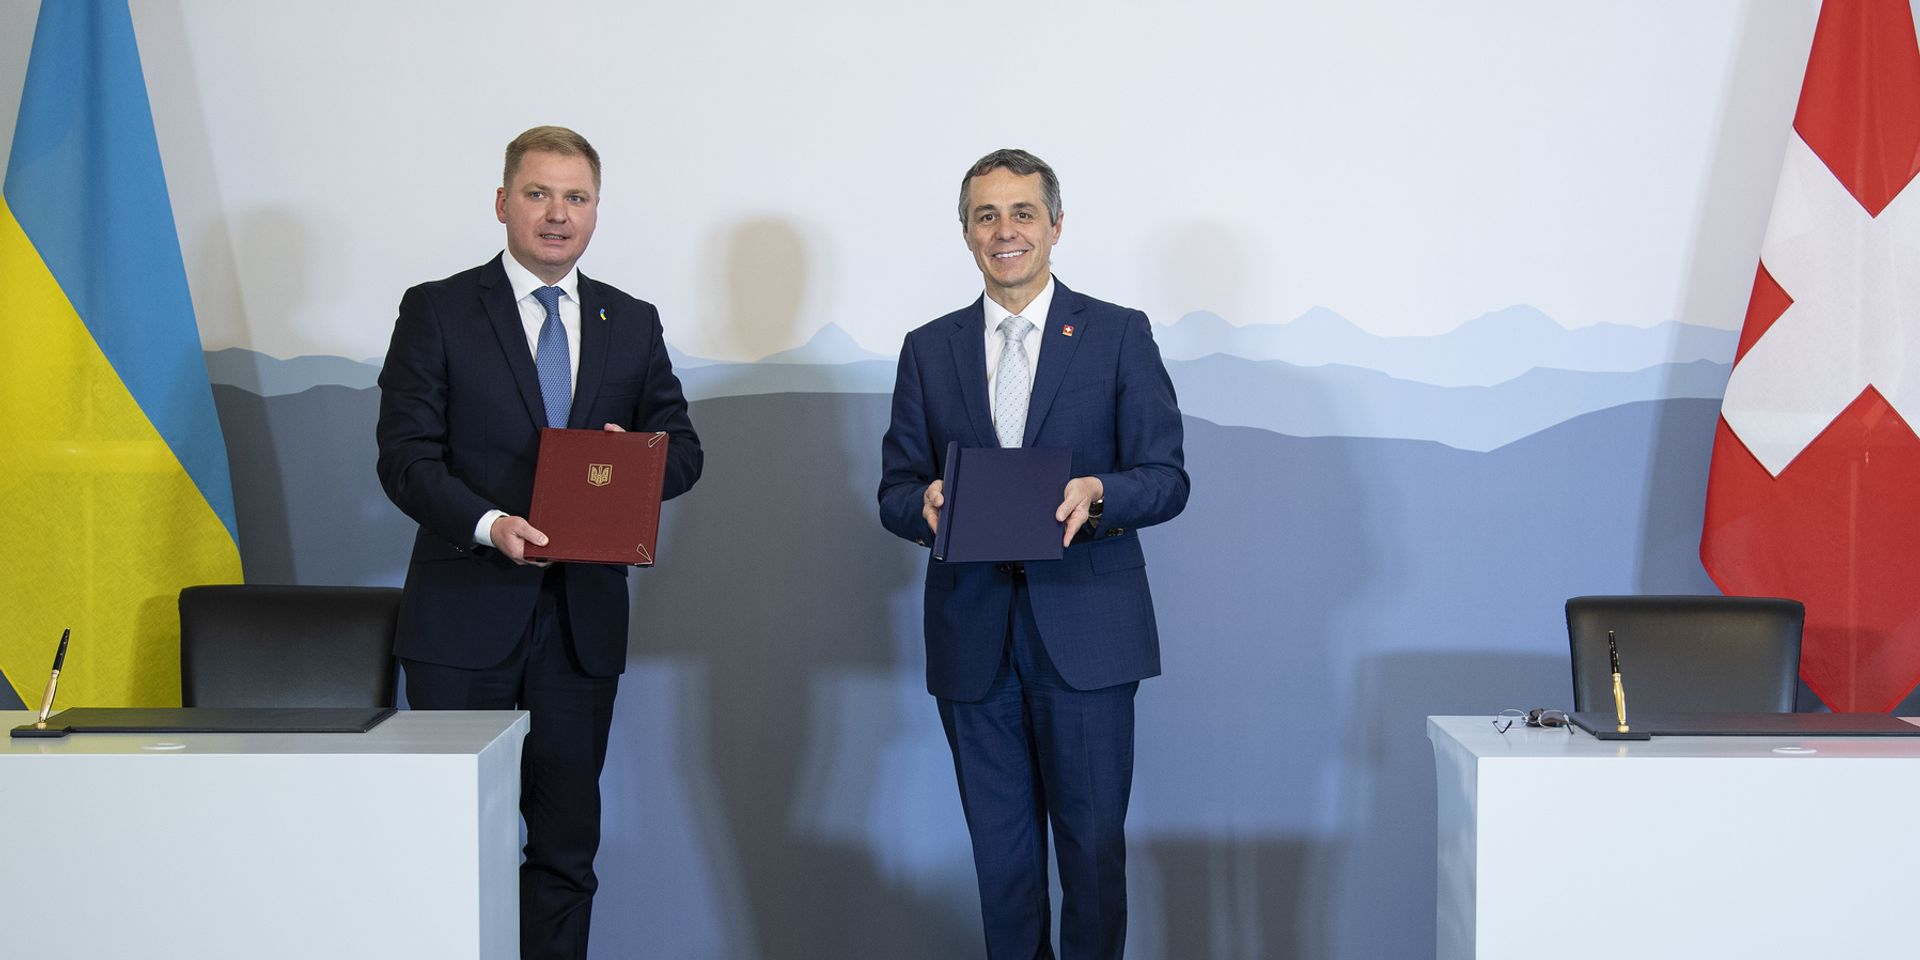 The Ukrainian Ambassador to Switzerland, Artem Rybchenko, and Federal Councillor Ignazio Cassis at the signing of the Memorandum of Understanding on 30 June 2020 in Bern.